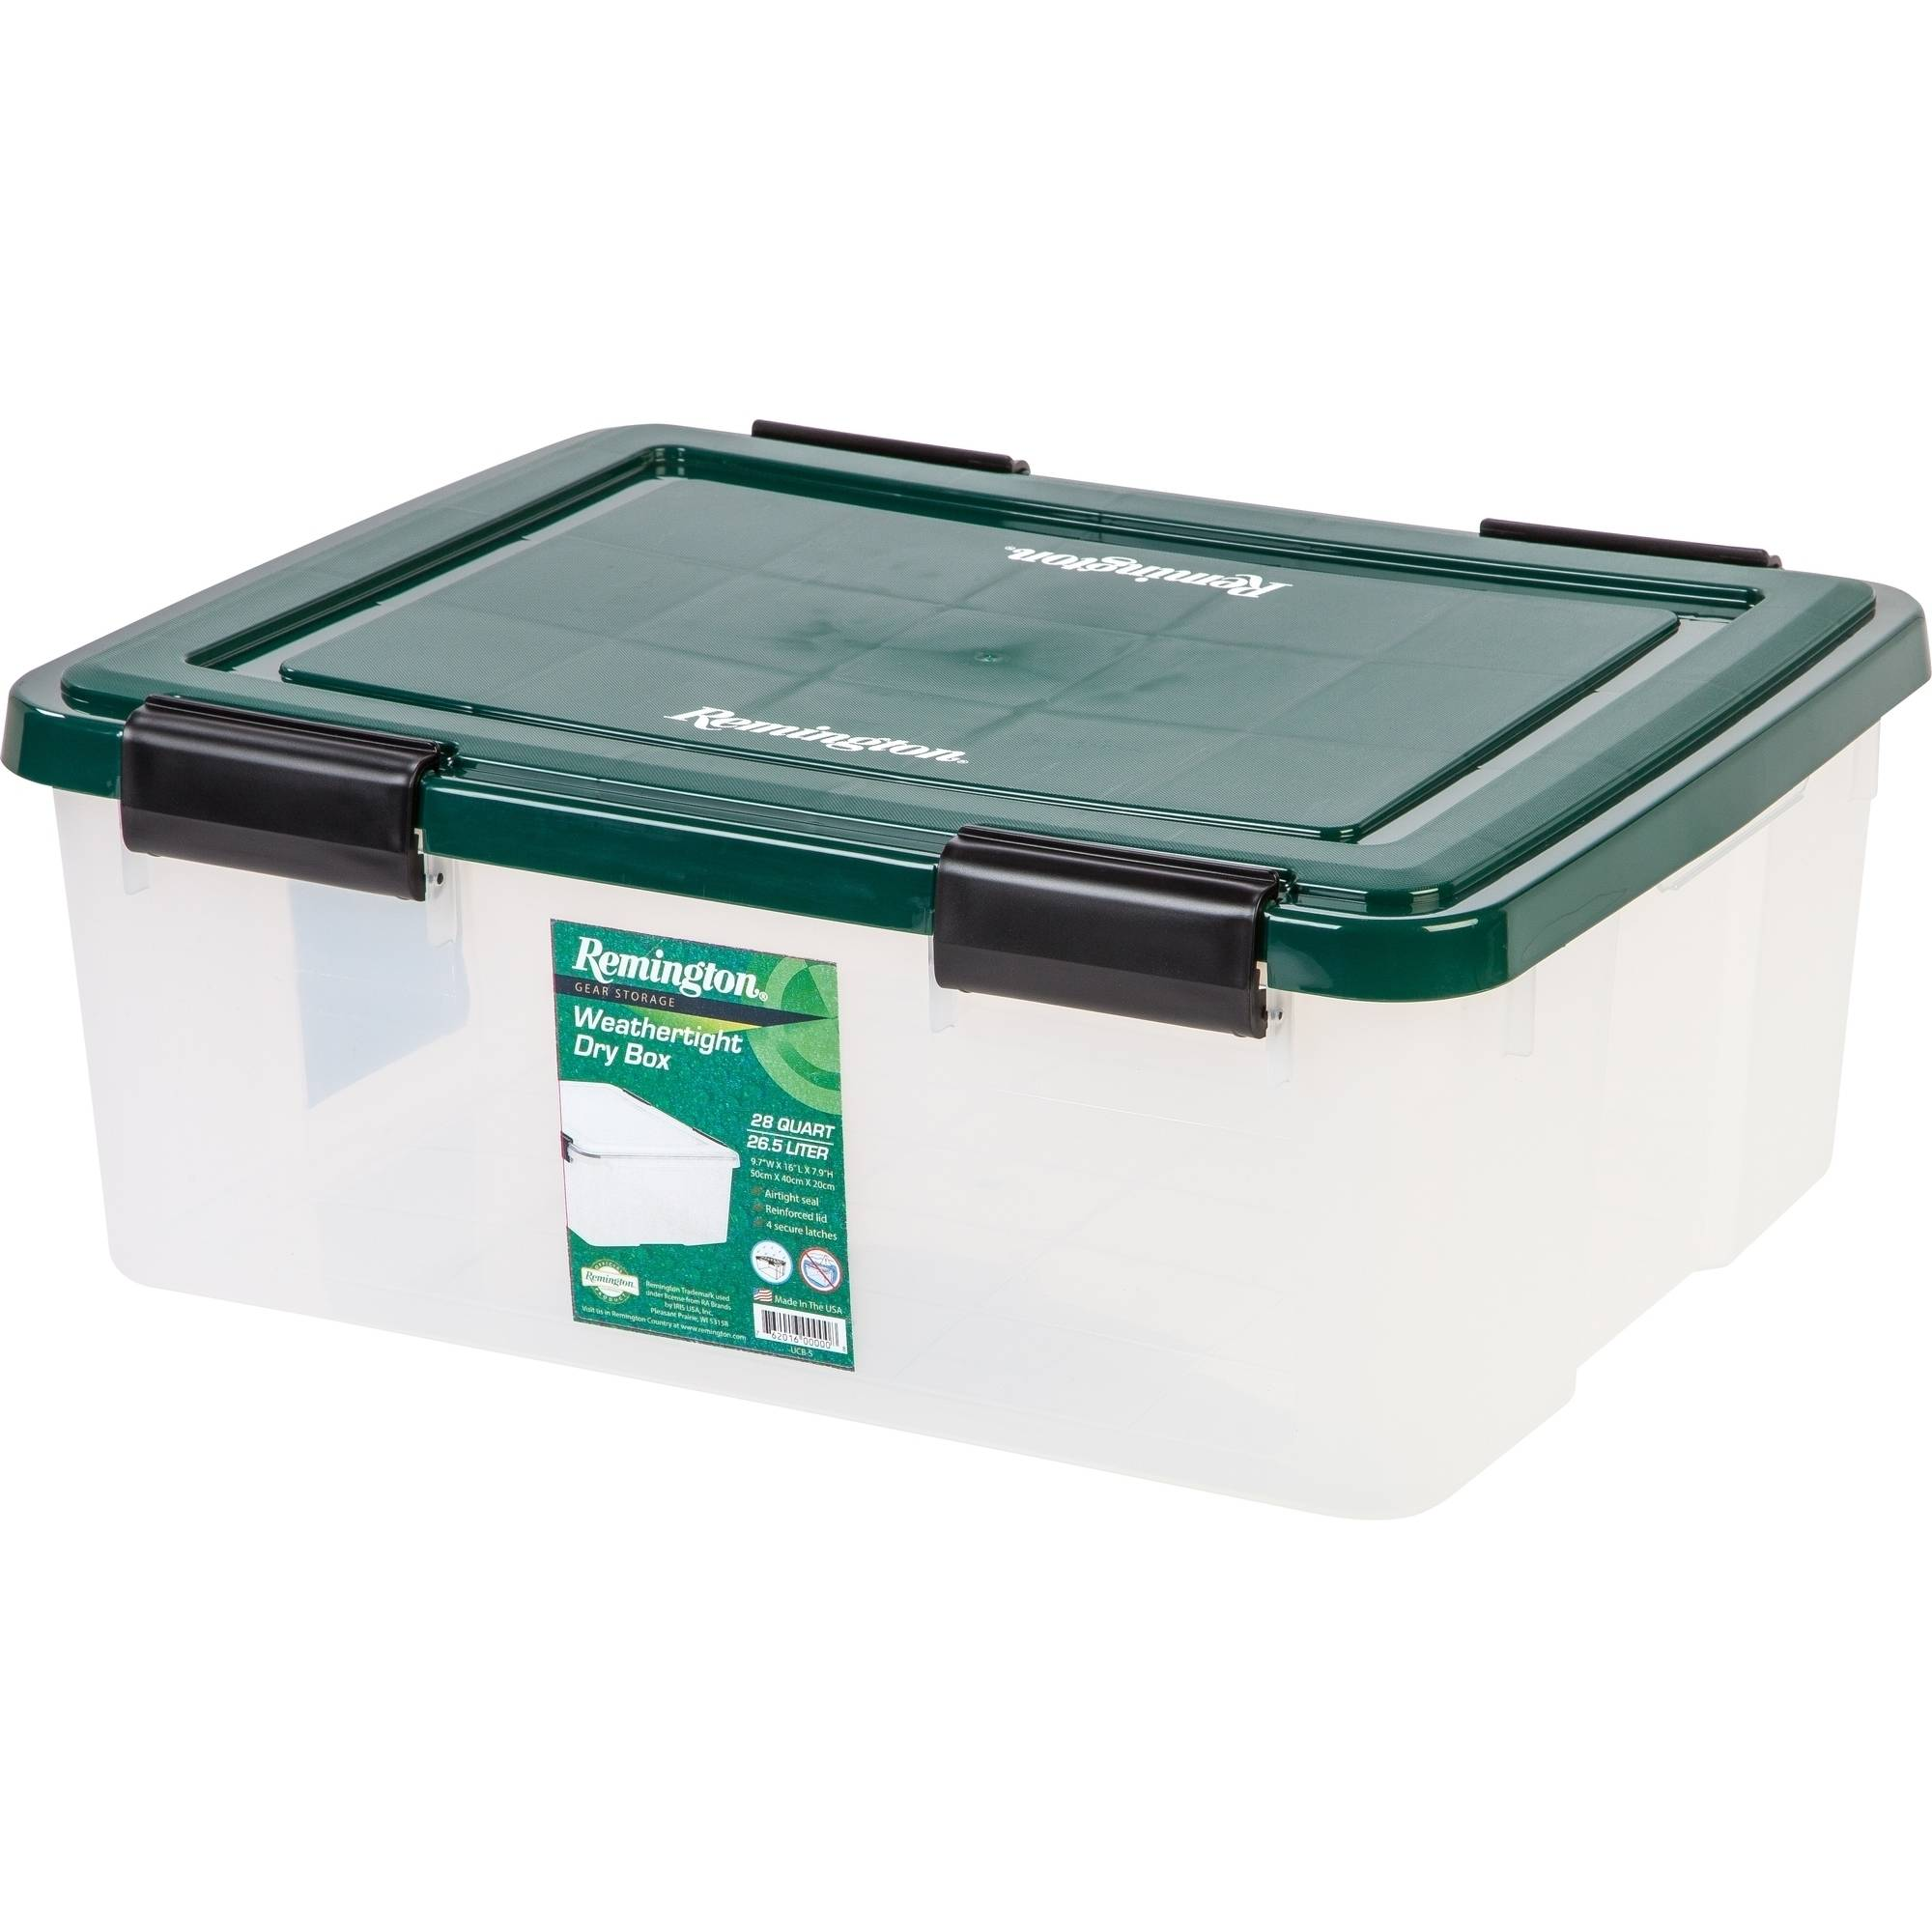 Remington 30 Qt. WEATHERTIGHT Plastic Storage Box, Green